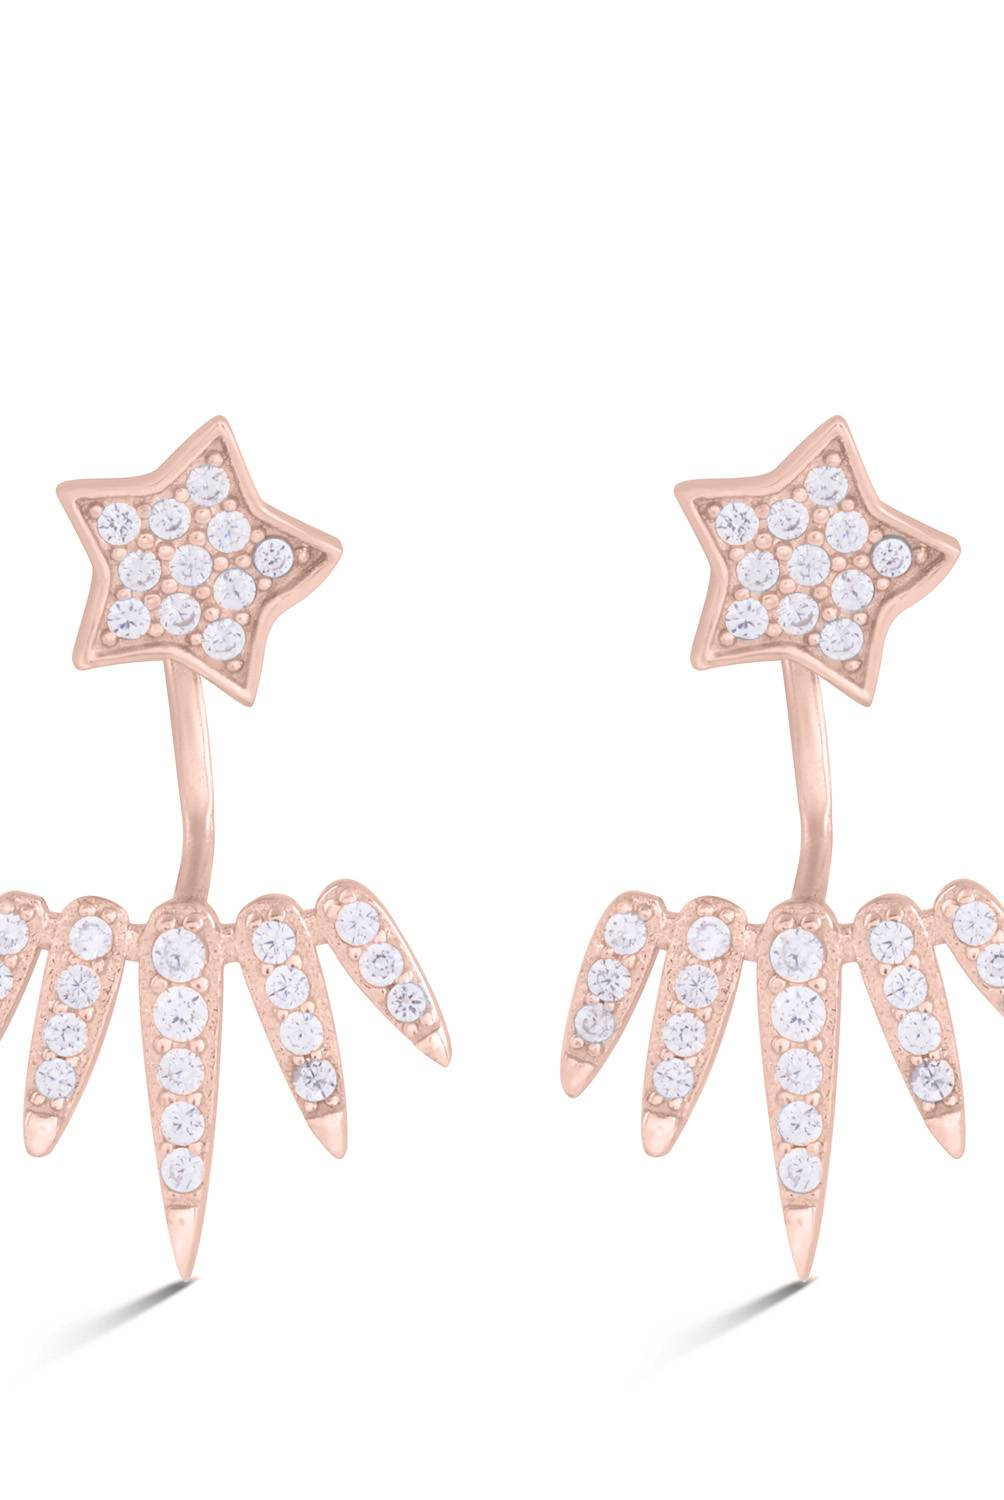 Luxenter - Aretes Luxenter Rilys EH132R0000